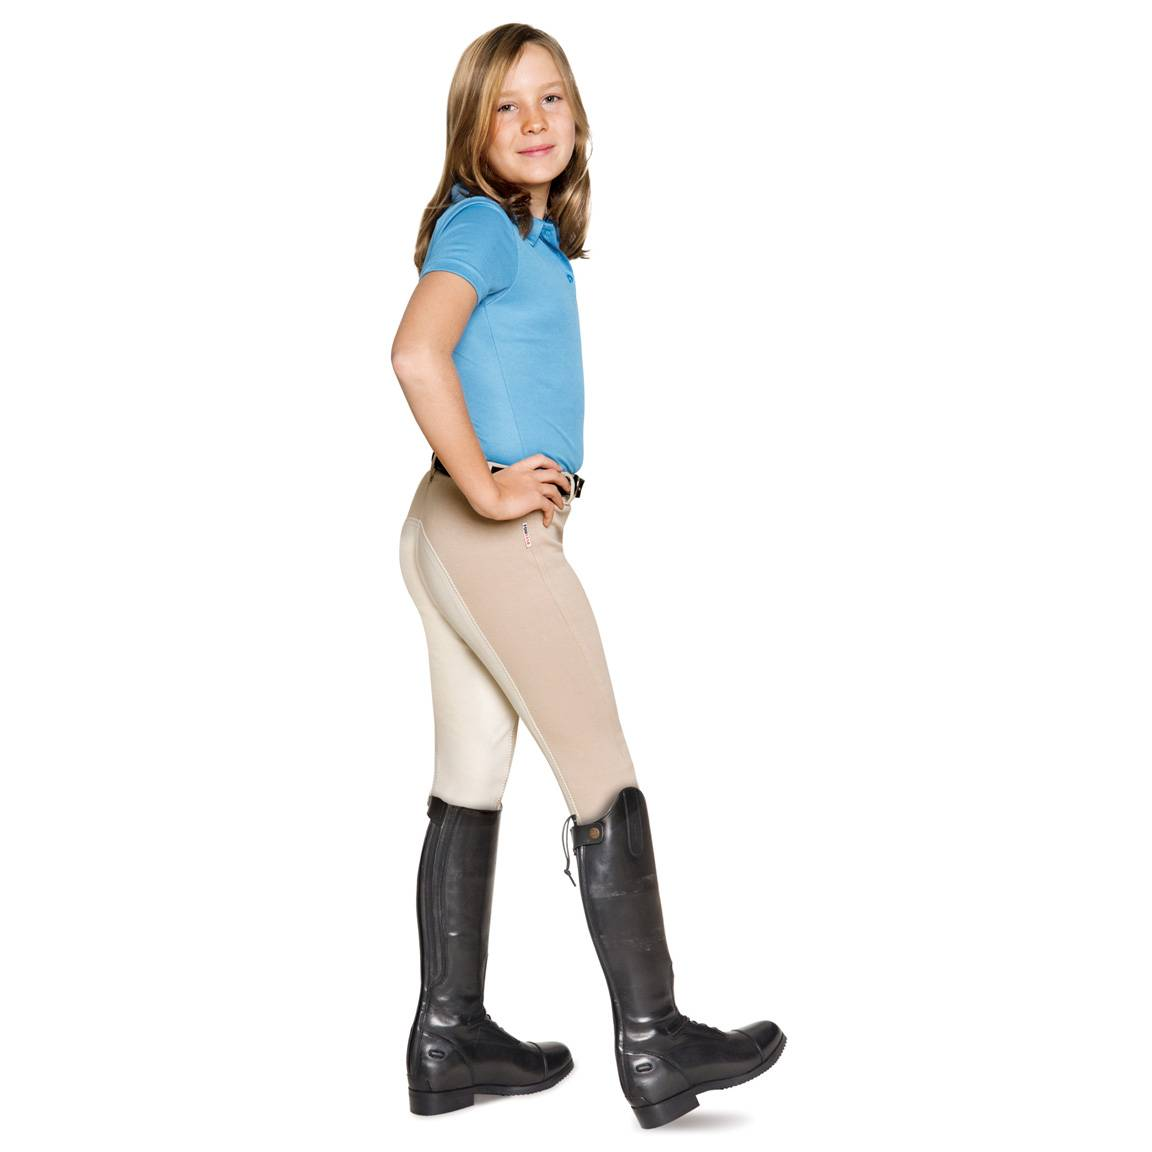 EquiStar Pull-On Full Seat Breeches - Kids